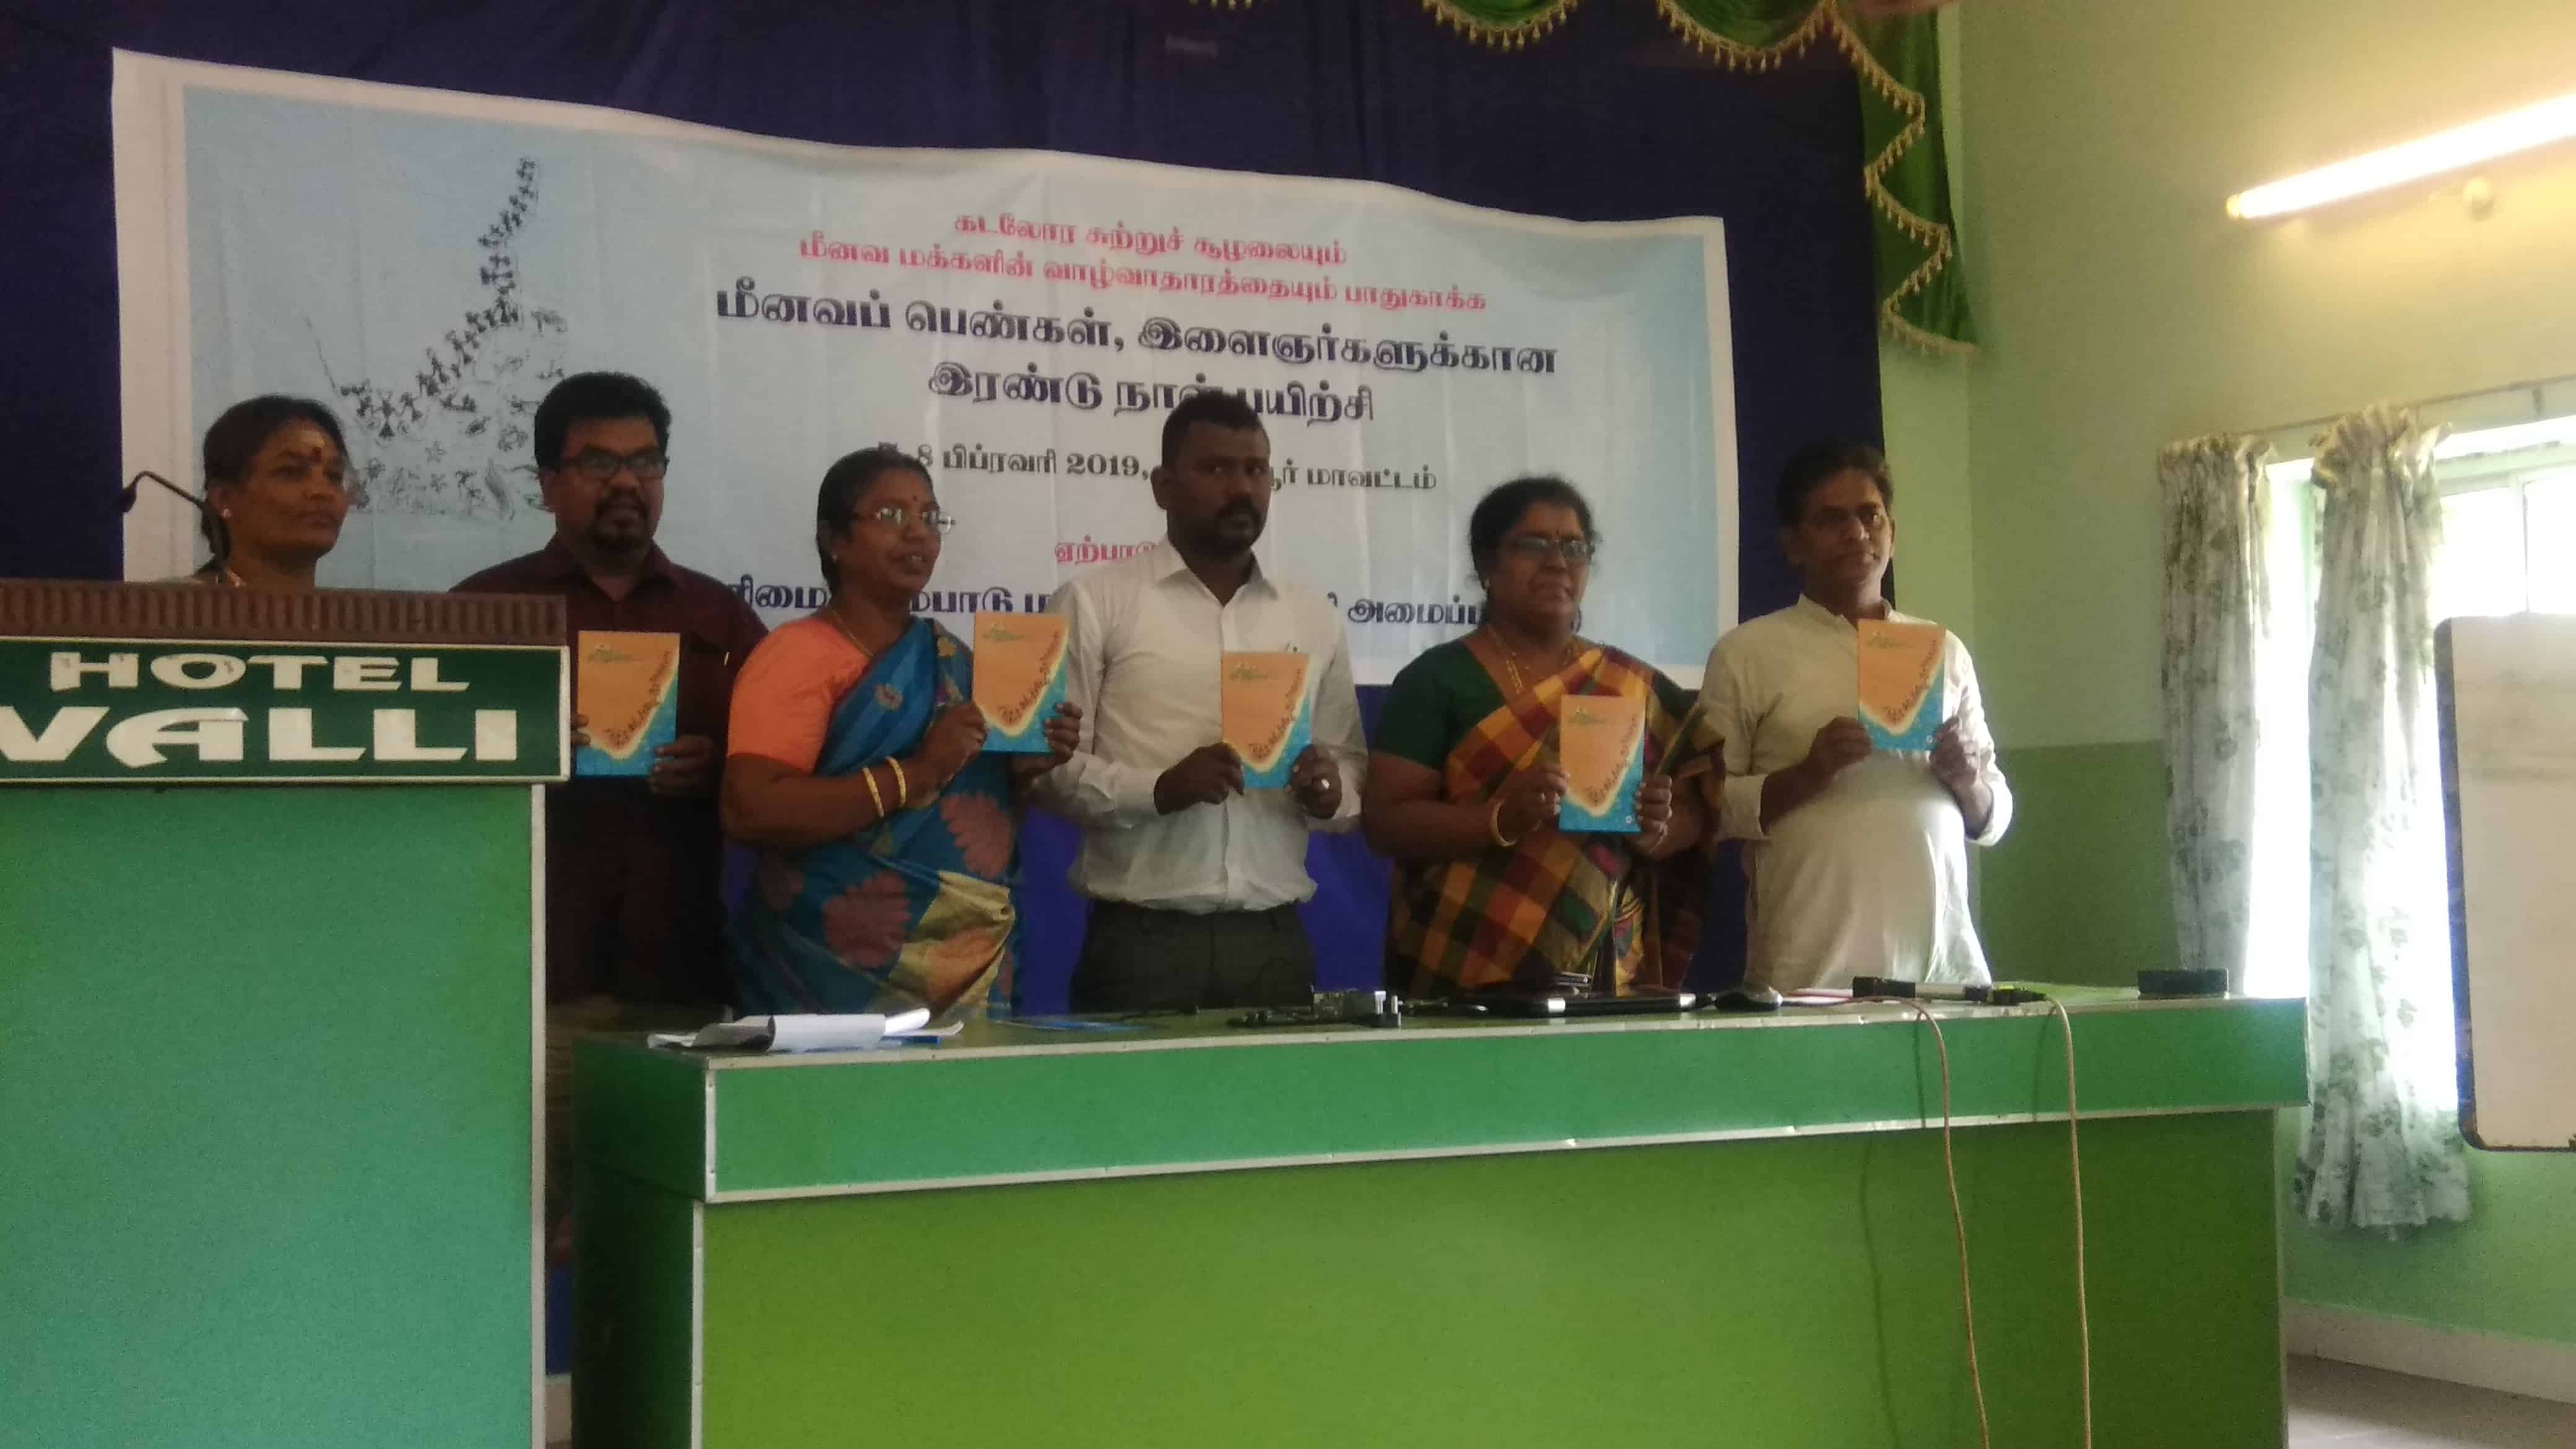 TOT for fishing  women and youths on  Protecting Coastal Rights in Tamil Nadu on 7 & 8 February 2019, Tanjore District